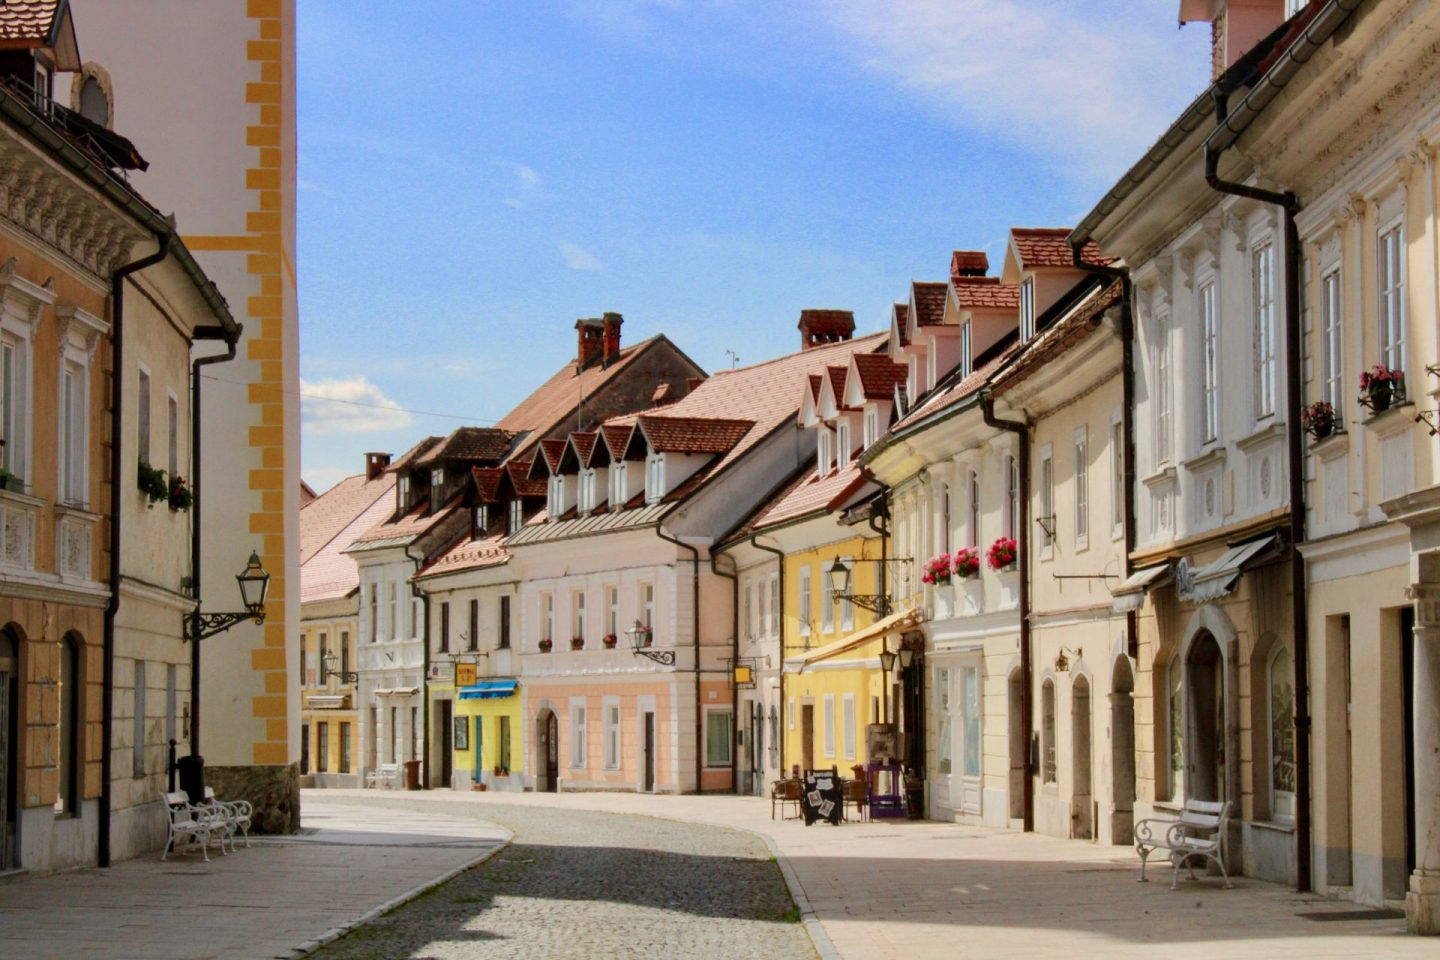 Kamnik and Velika Planina: The town of Kamnik in the Ljubljana region, showing an empty but very pretty street